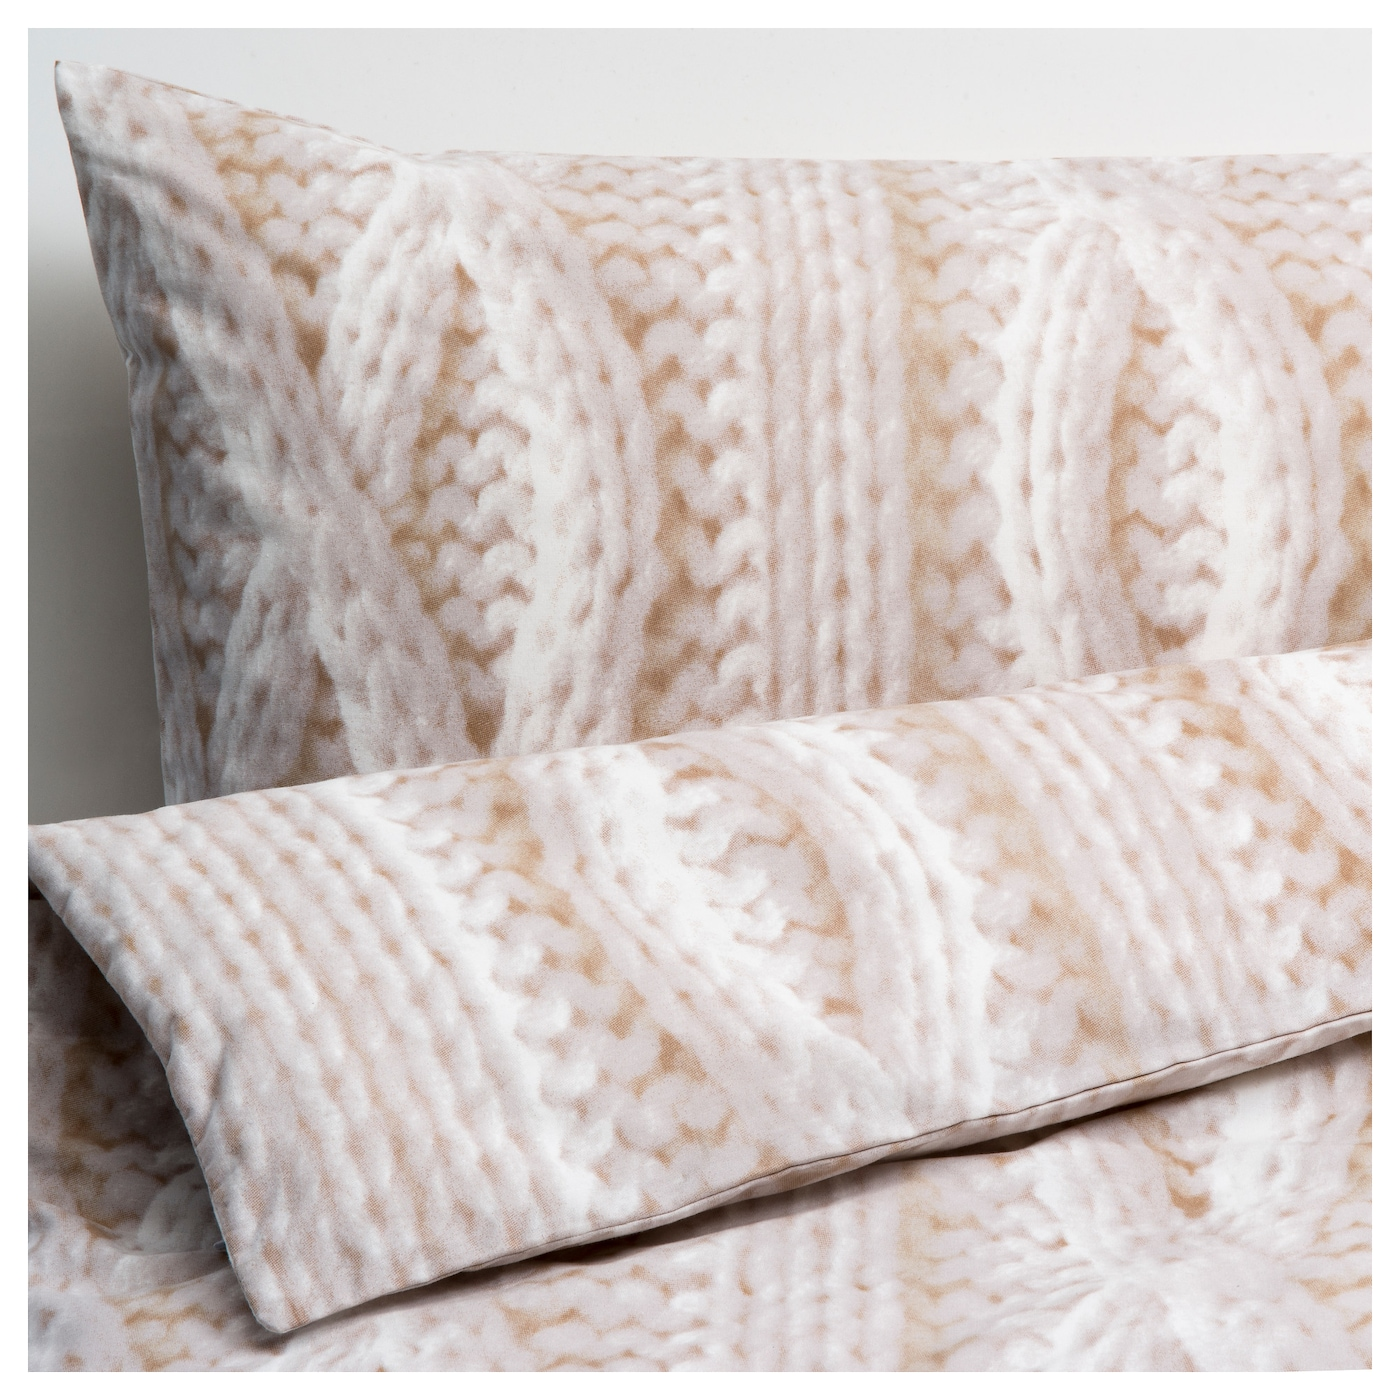 IKEA RÅGLOSTA quilt cover and 2 pillowcases Cotton, feels soft and nice against your skin.